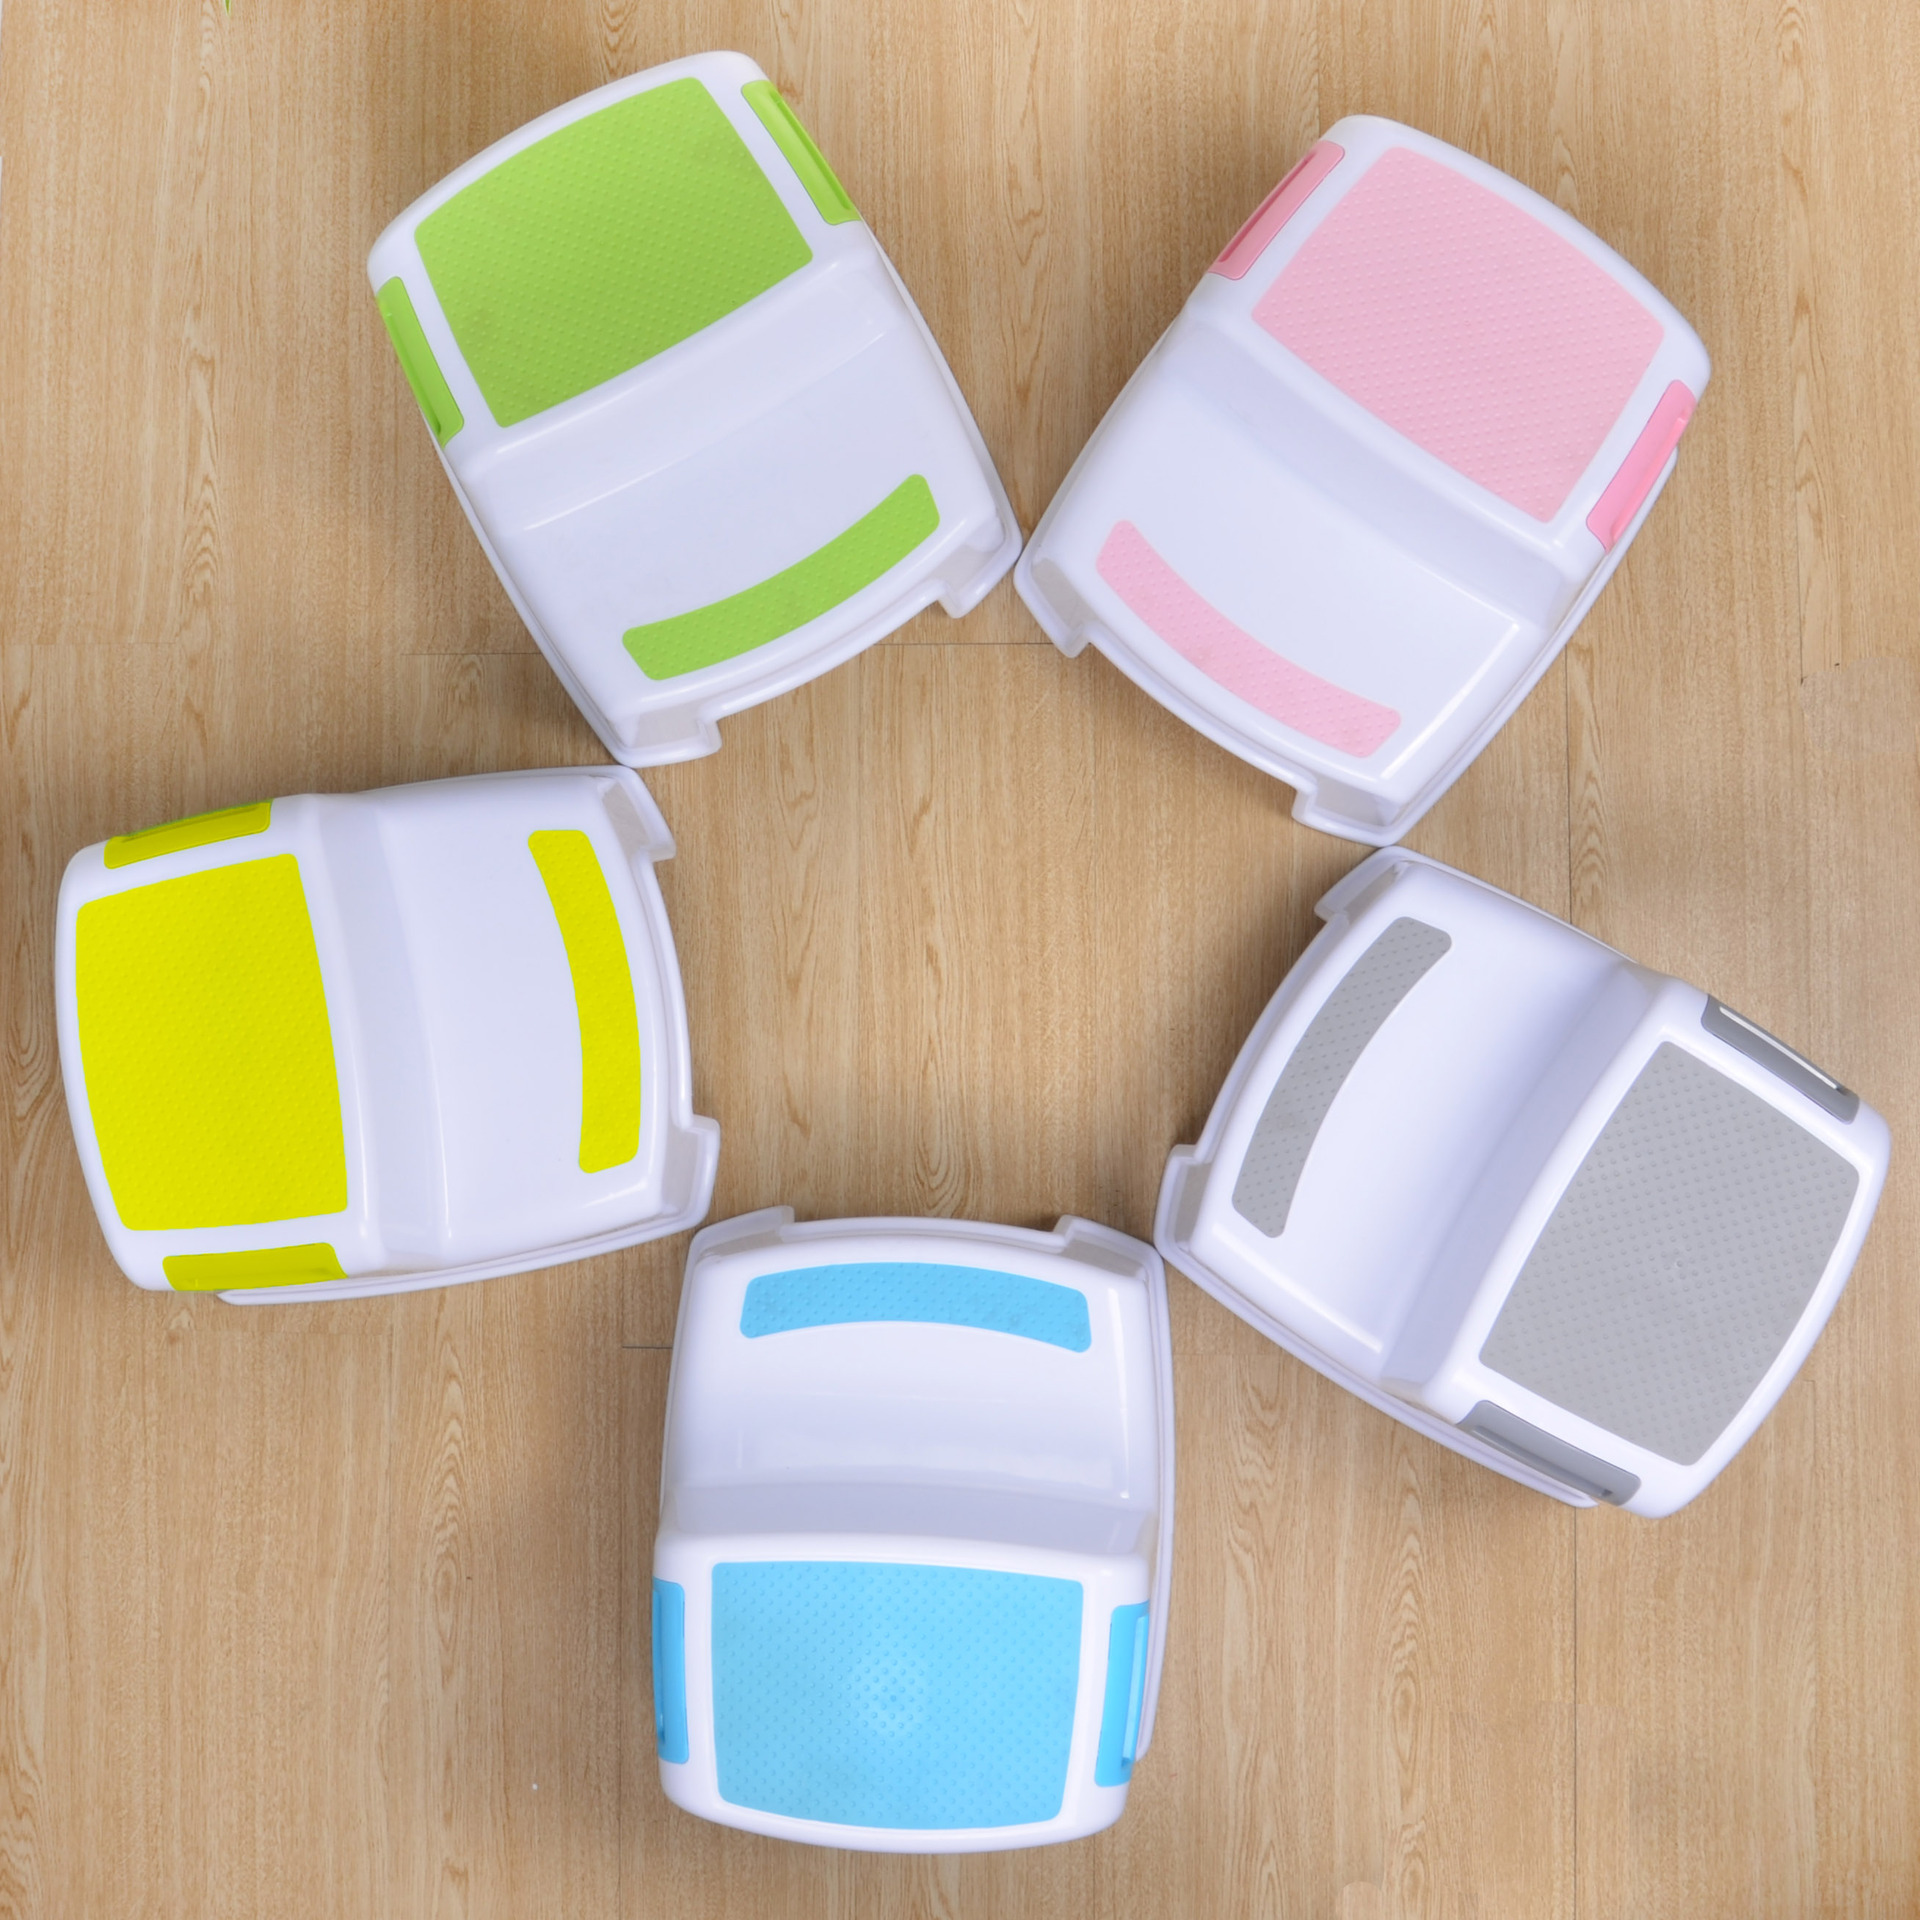 household colorful portable Children baby bathroom non-slip plastic stool two step ladder stool Bench footstool